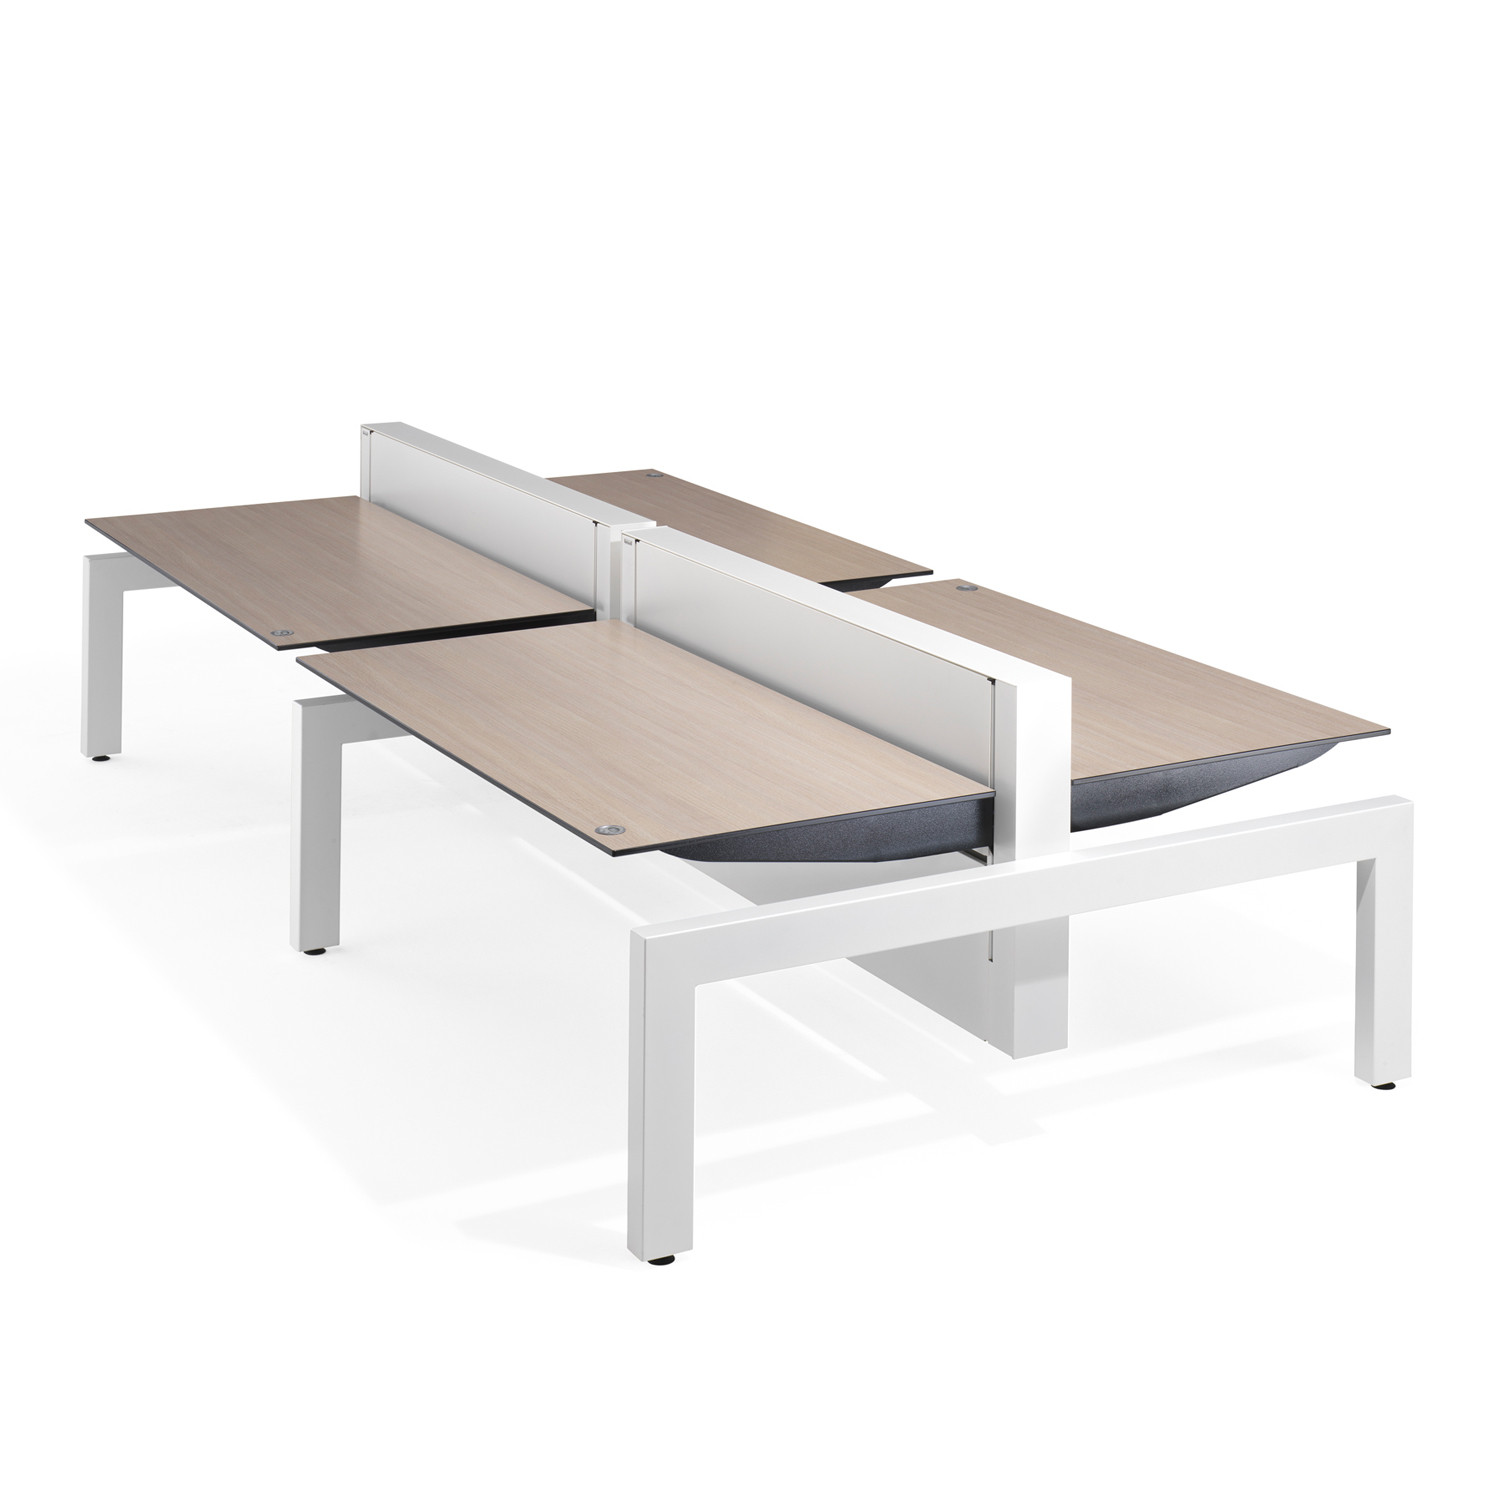 Ahrend 750 Height Adjustable Bench System